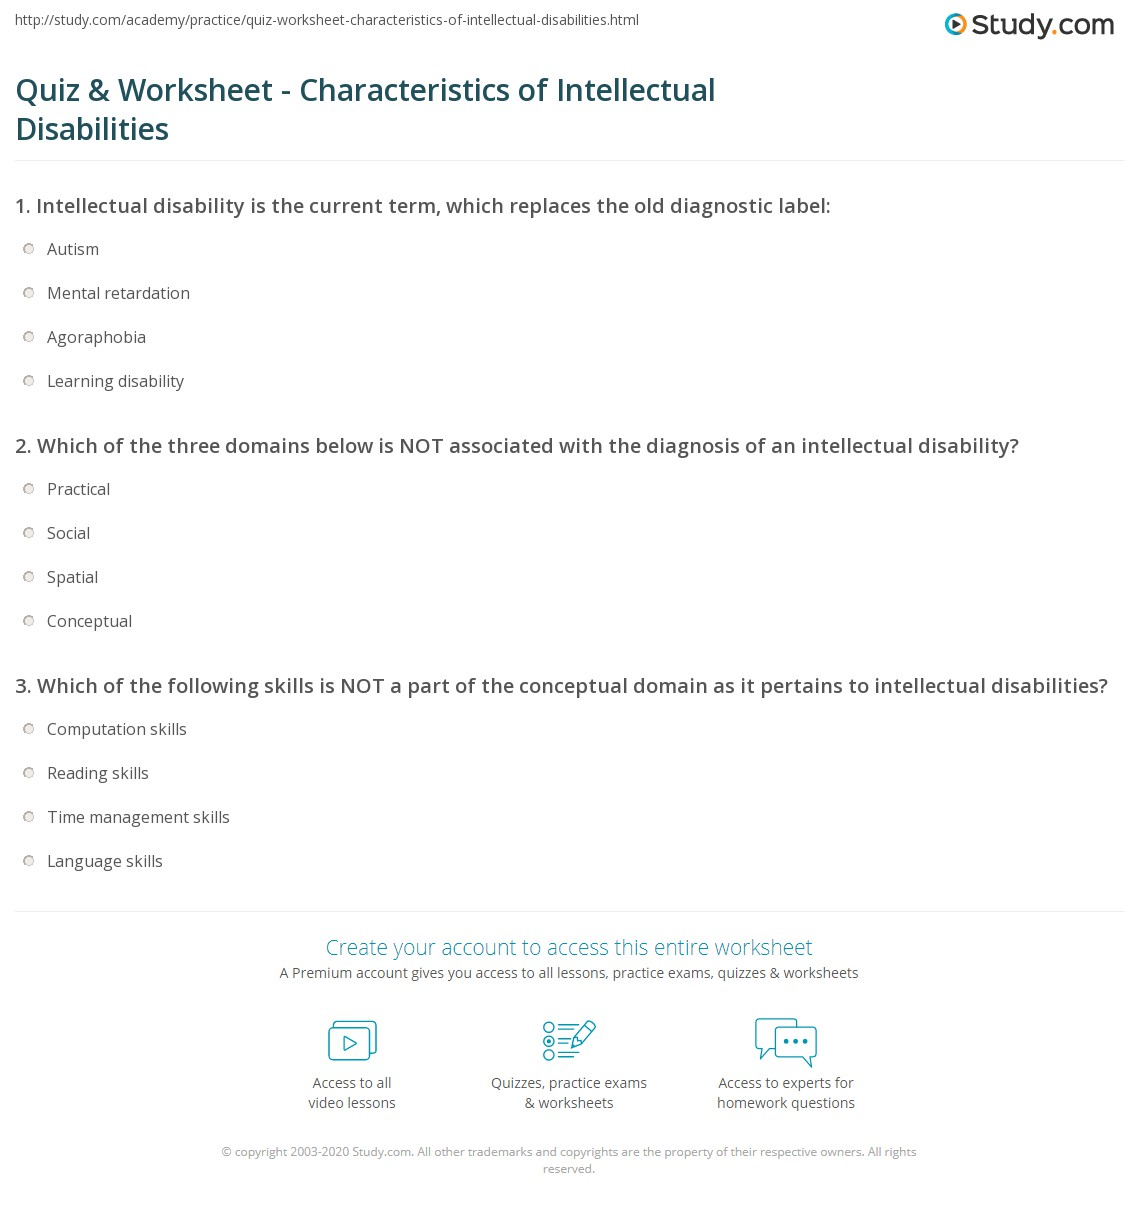 Workbooks dual diagnosis workbook free : quiz-worksheet-characteristics-of-intellectual-disabilities.jpg